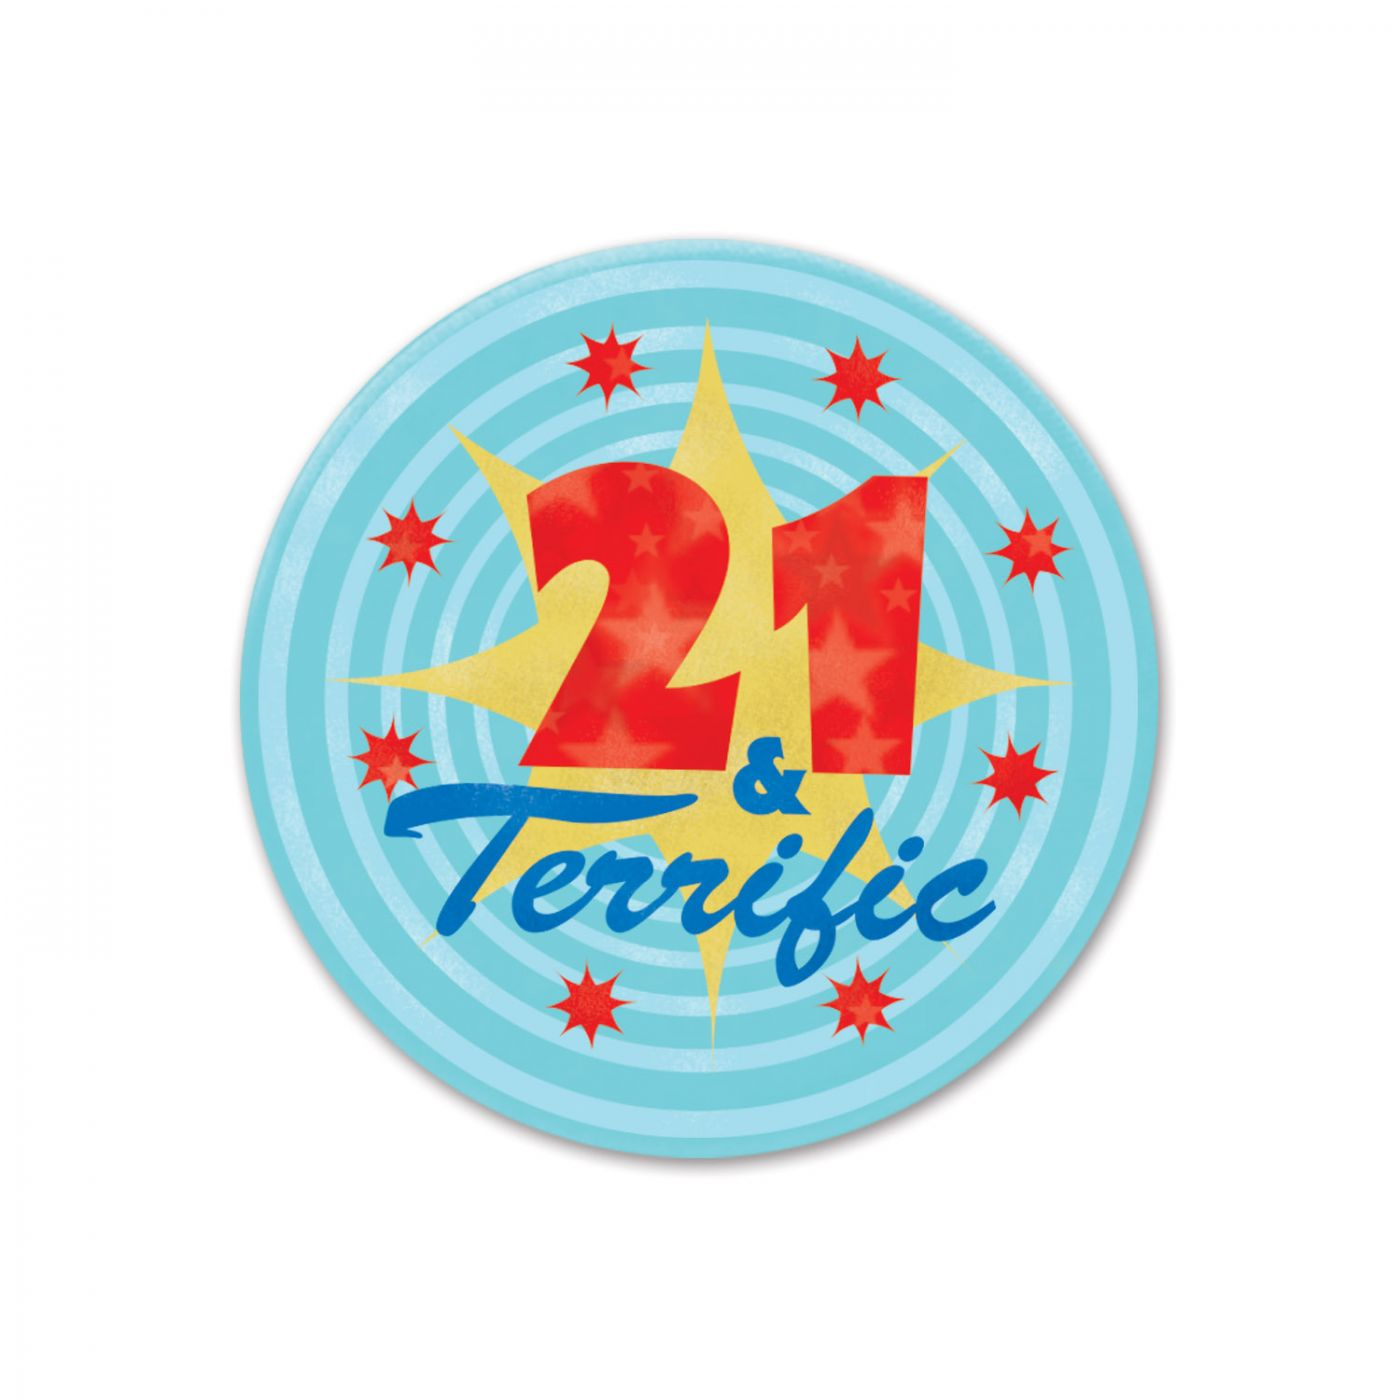 Image of 21 & Terrific Satin Button (6)